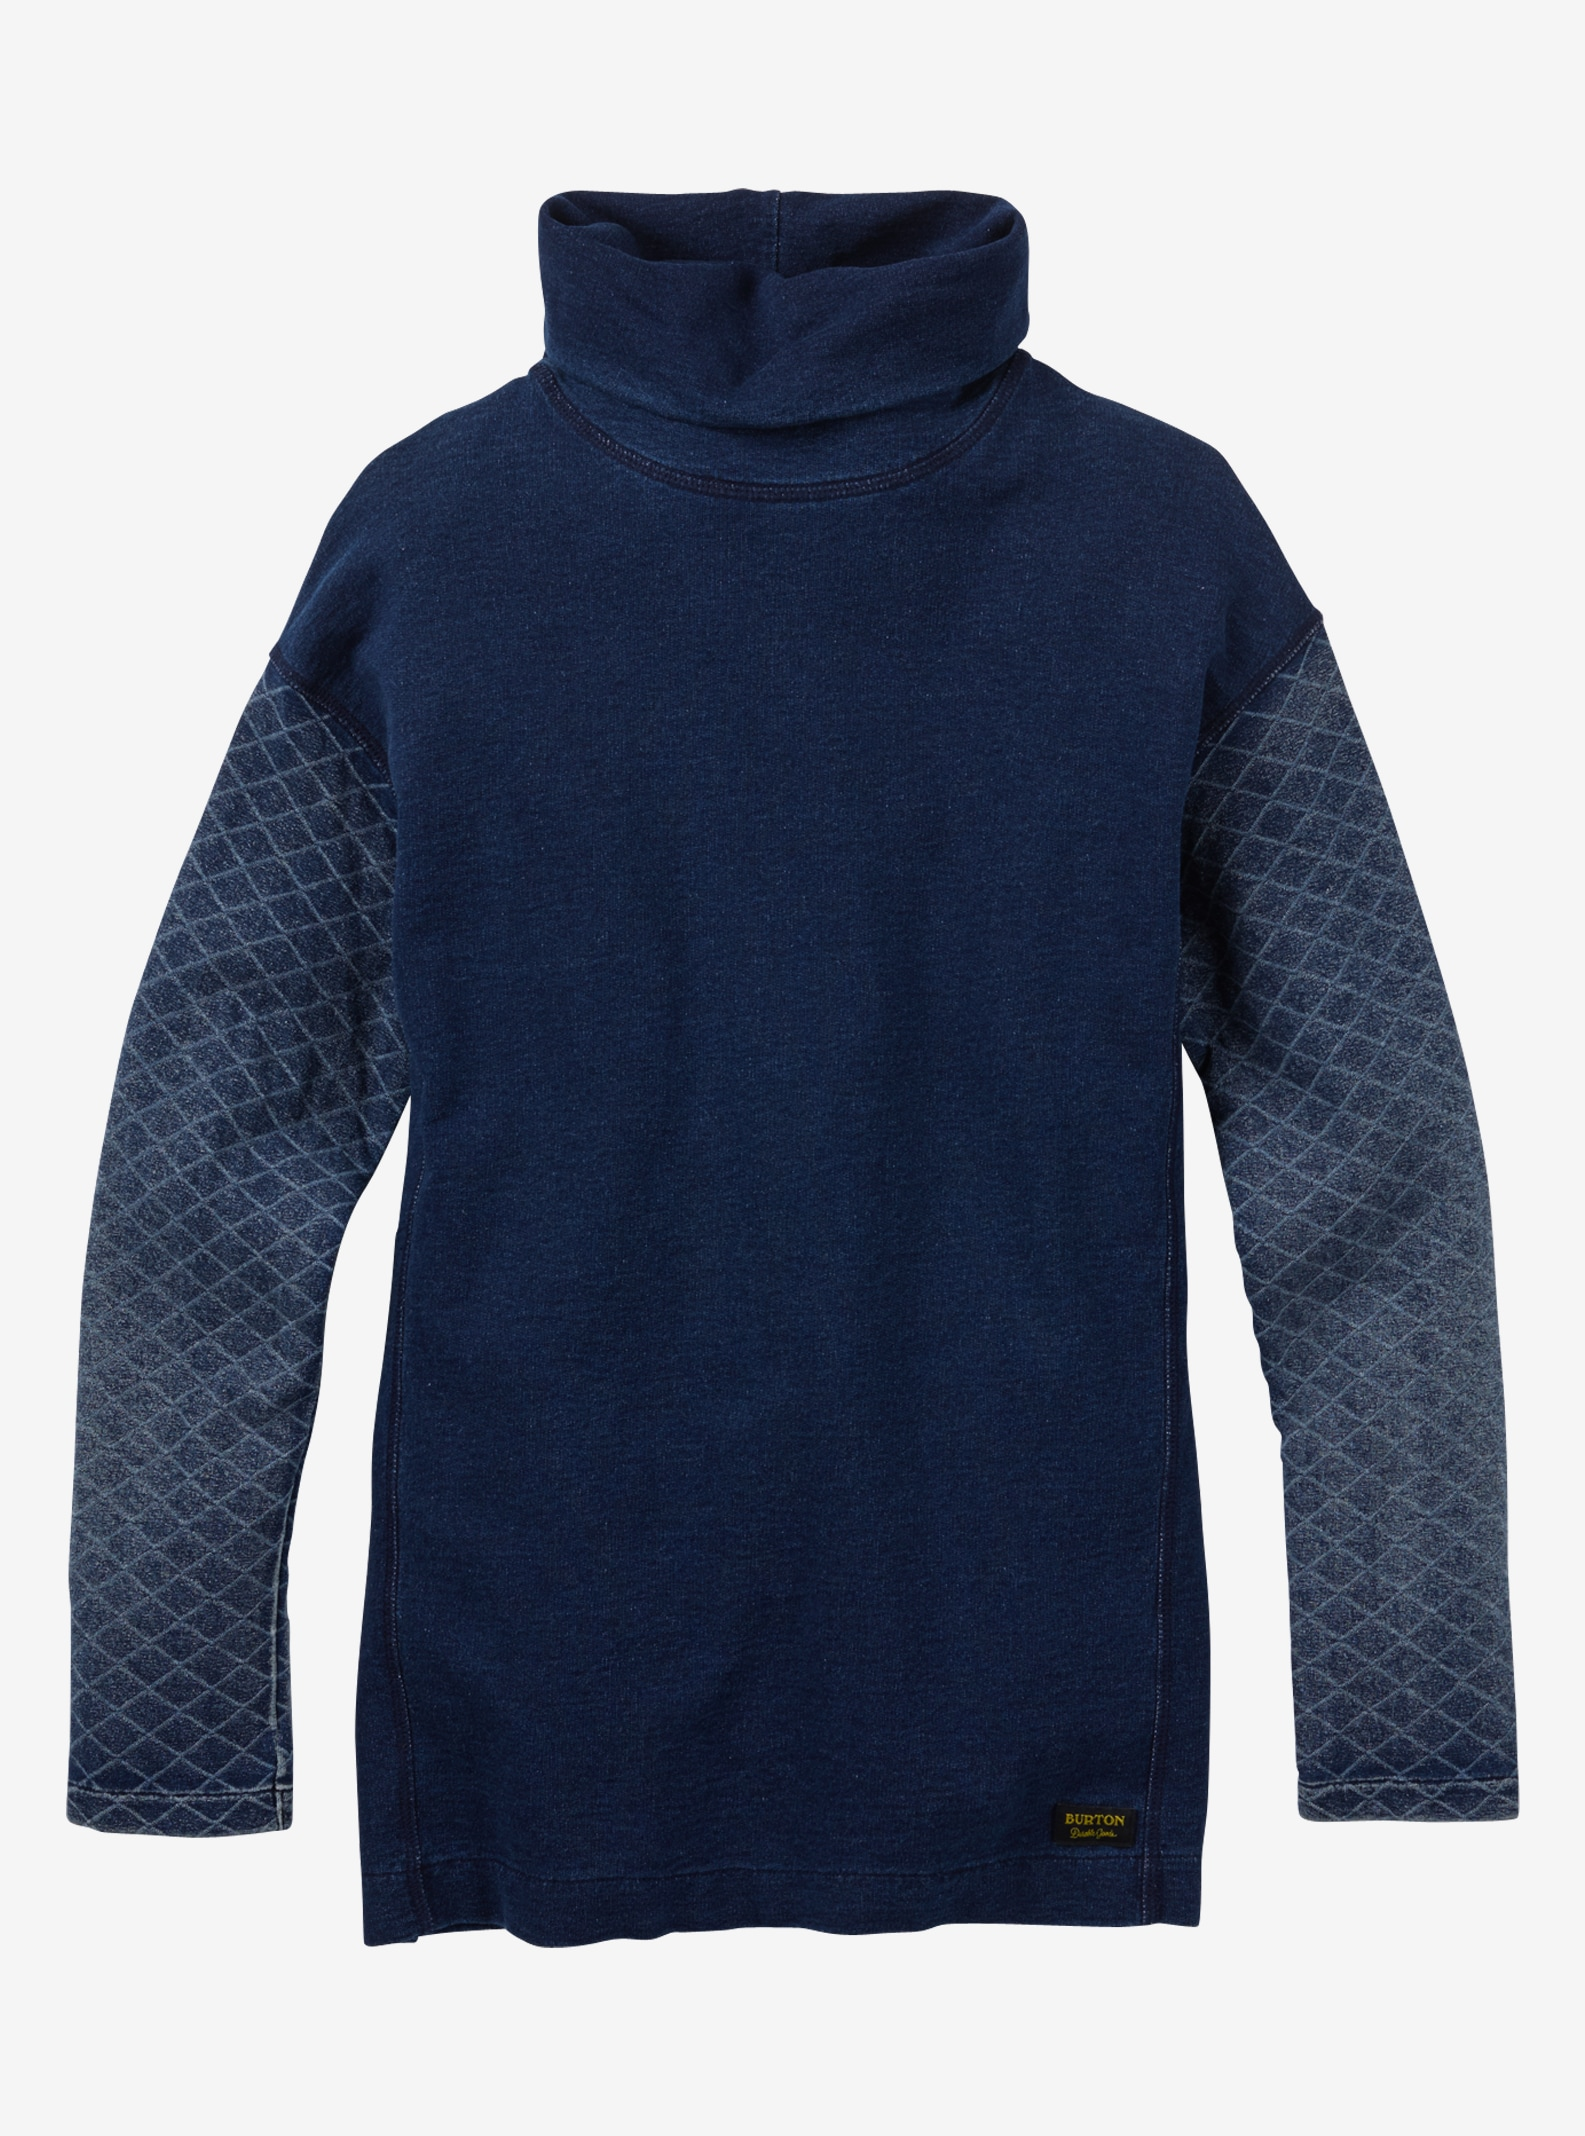 Burton Noonmark Funnel Neck shown in Indigo